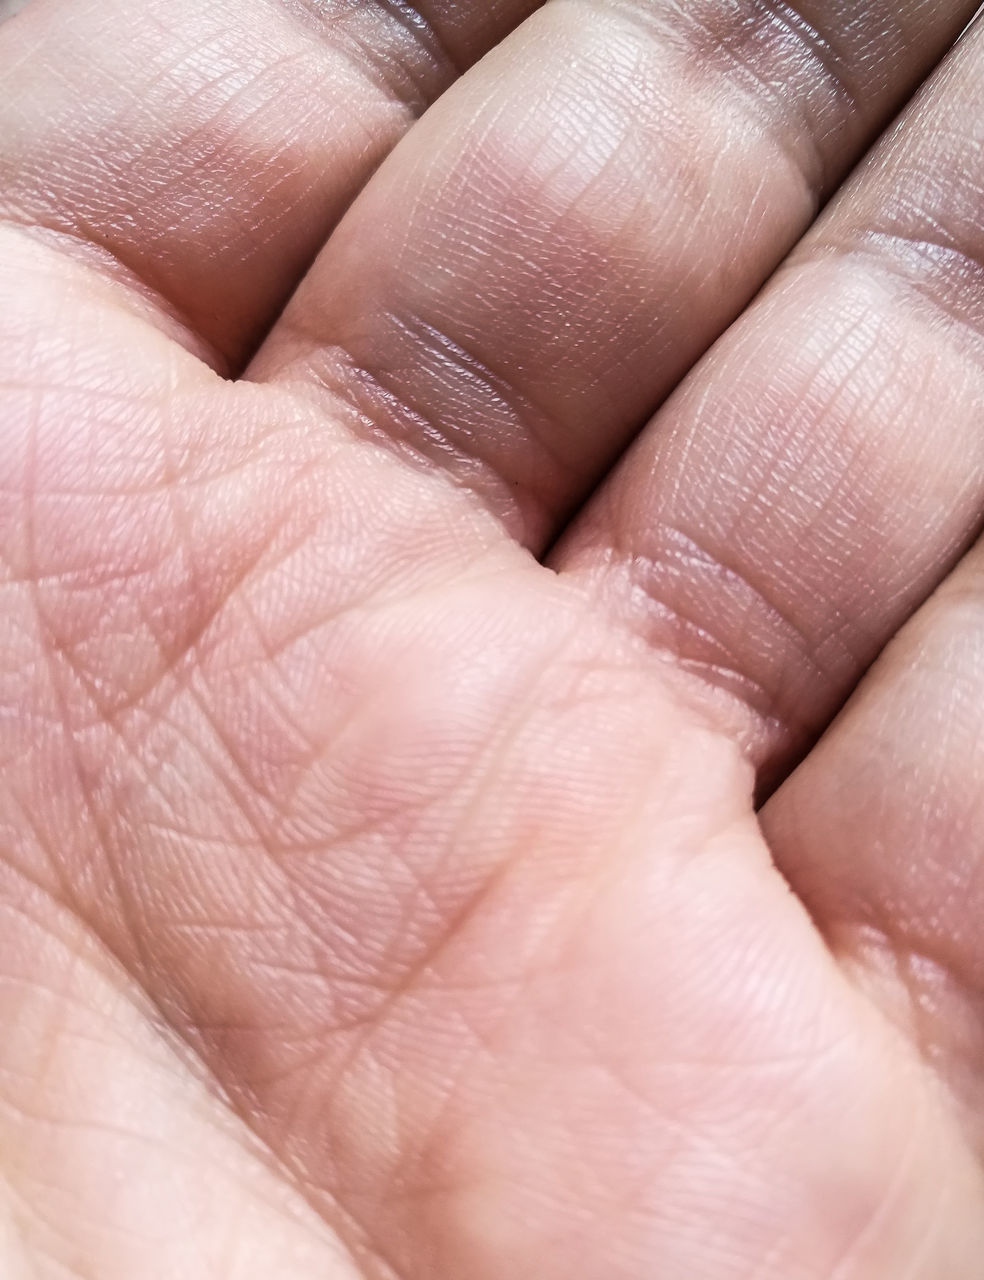 human body part, human hand, human finger, one person, real people, human skin, full frame, backgrounds, close-up, day, palm, indoors, people